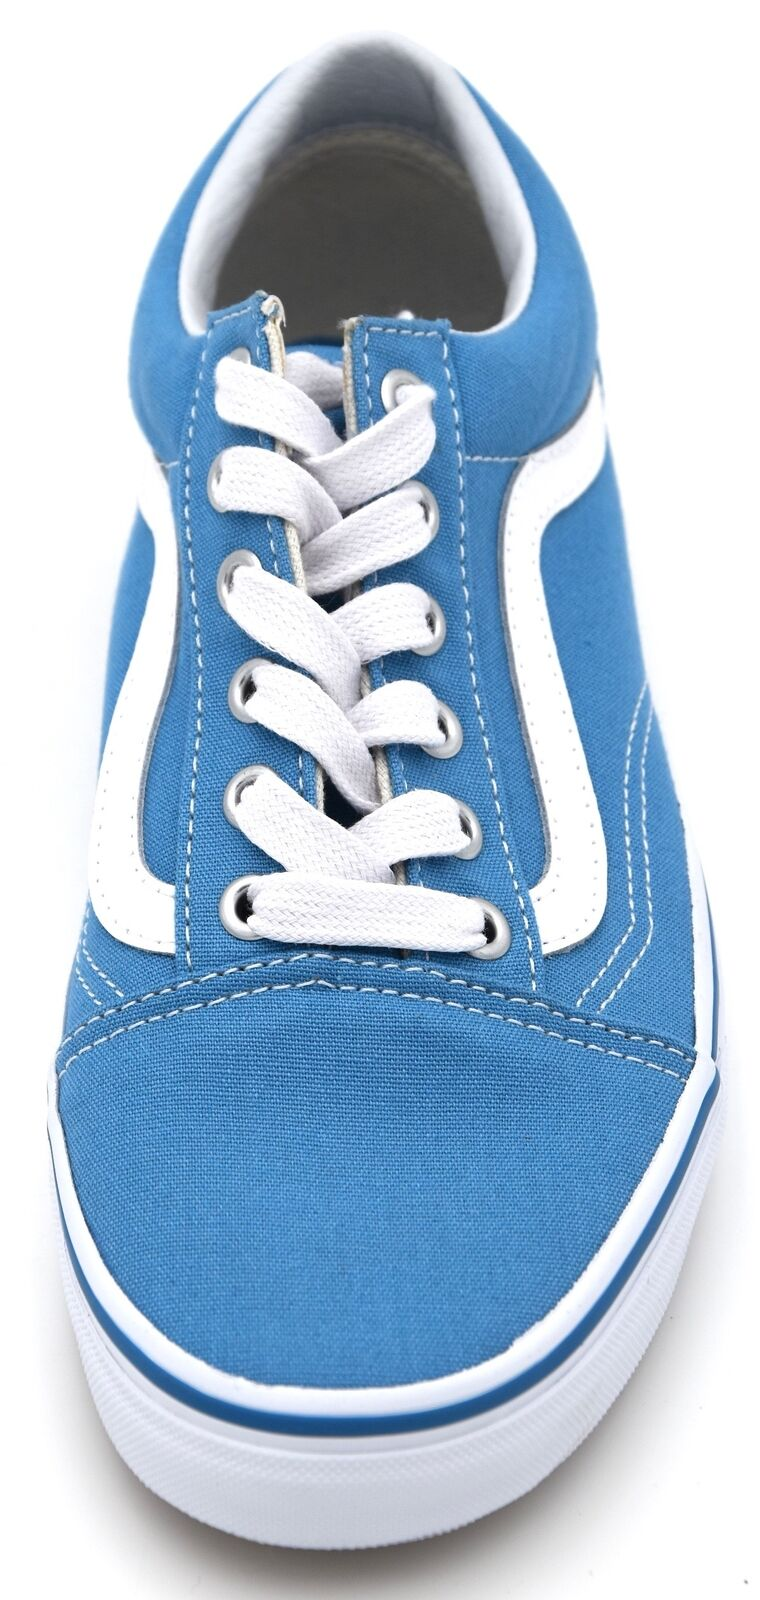 VANS WOMAN SNEAKER SHOES CASUAL FREE TIME OLD SKOOL VN0A38G1MOO - VN0A38G1MON